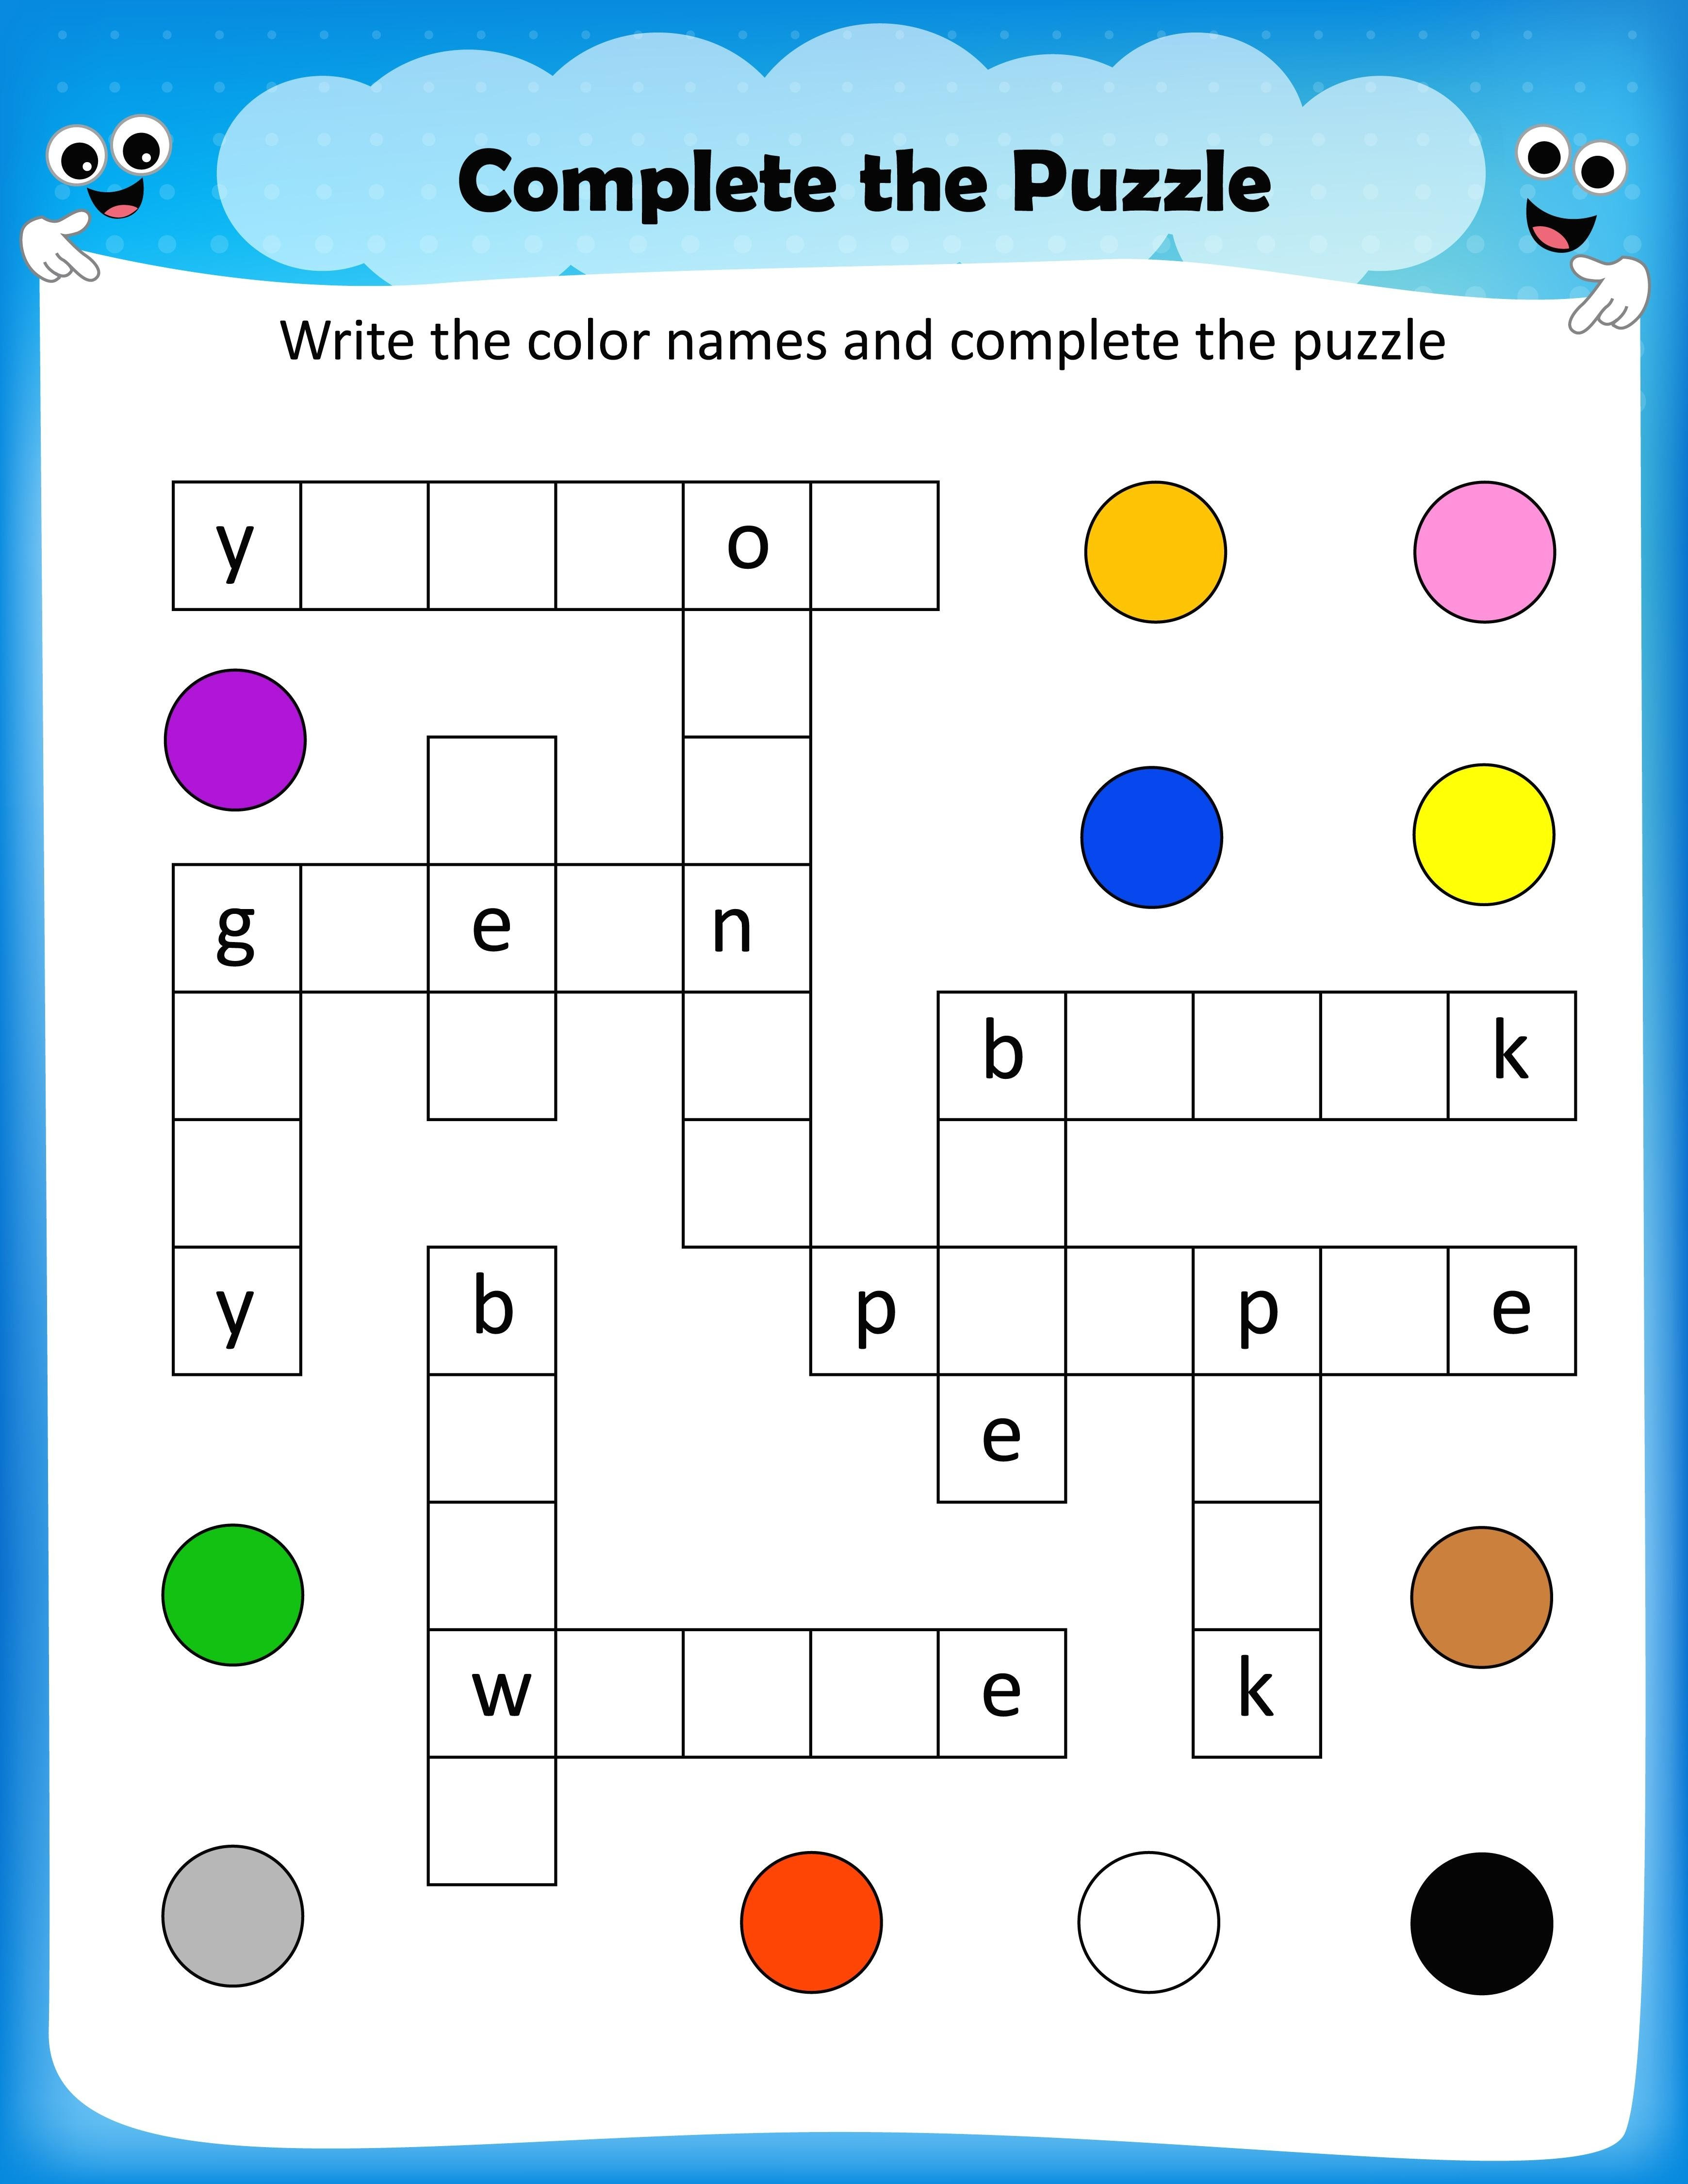 Free Printable Crossword Puzzles For Kids Free Printable Crosswords - Free Printable Puzzles For Kids